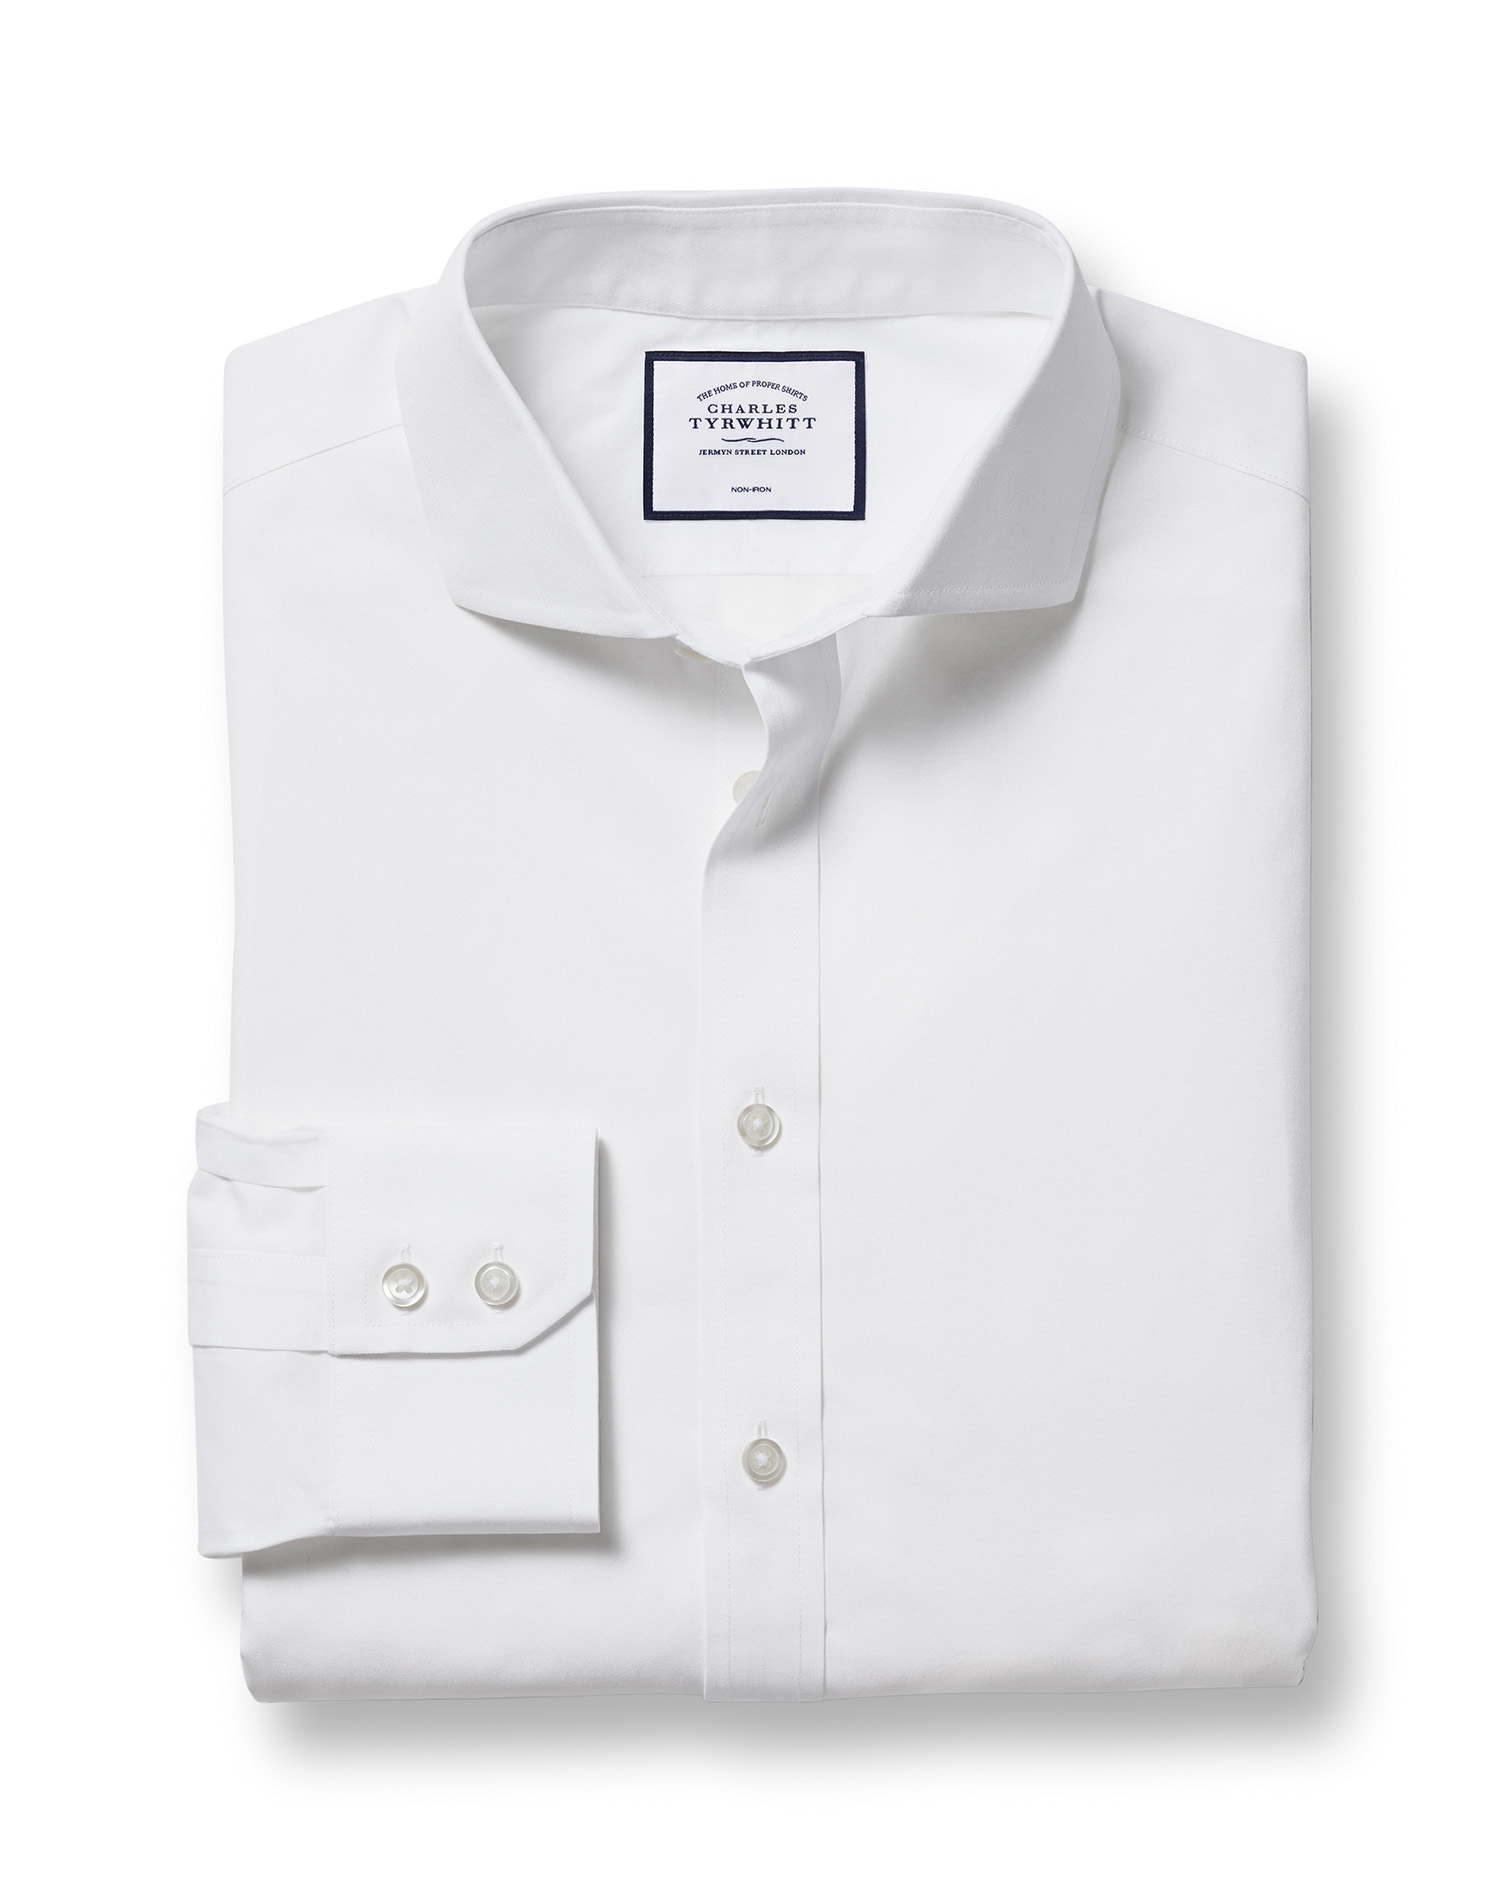 Extra Slim Fit Cutaway Non-Iron Poplin White Cotton Formal Shirt Single Cuff Size 15/35 by Charles T